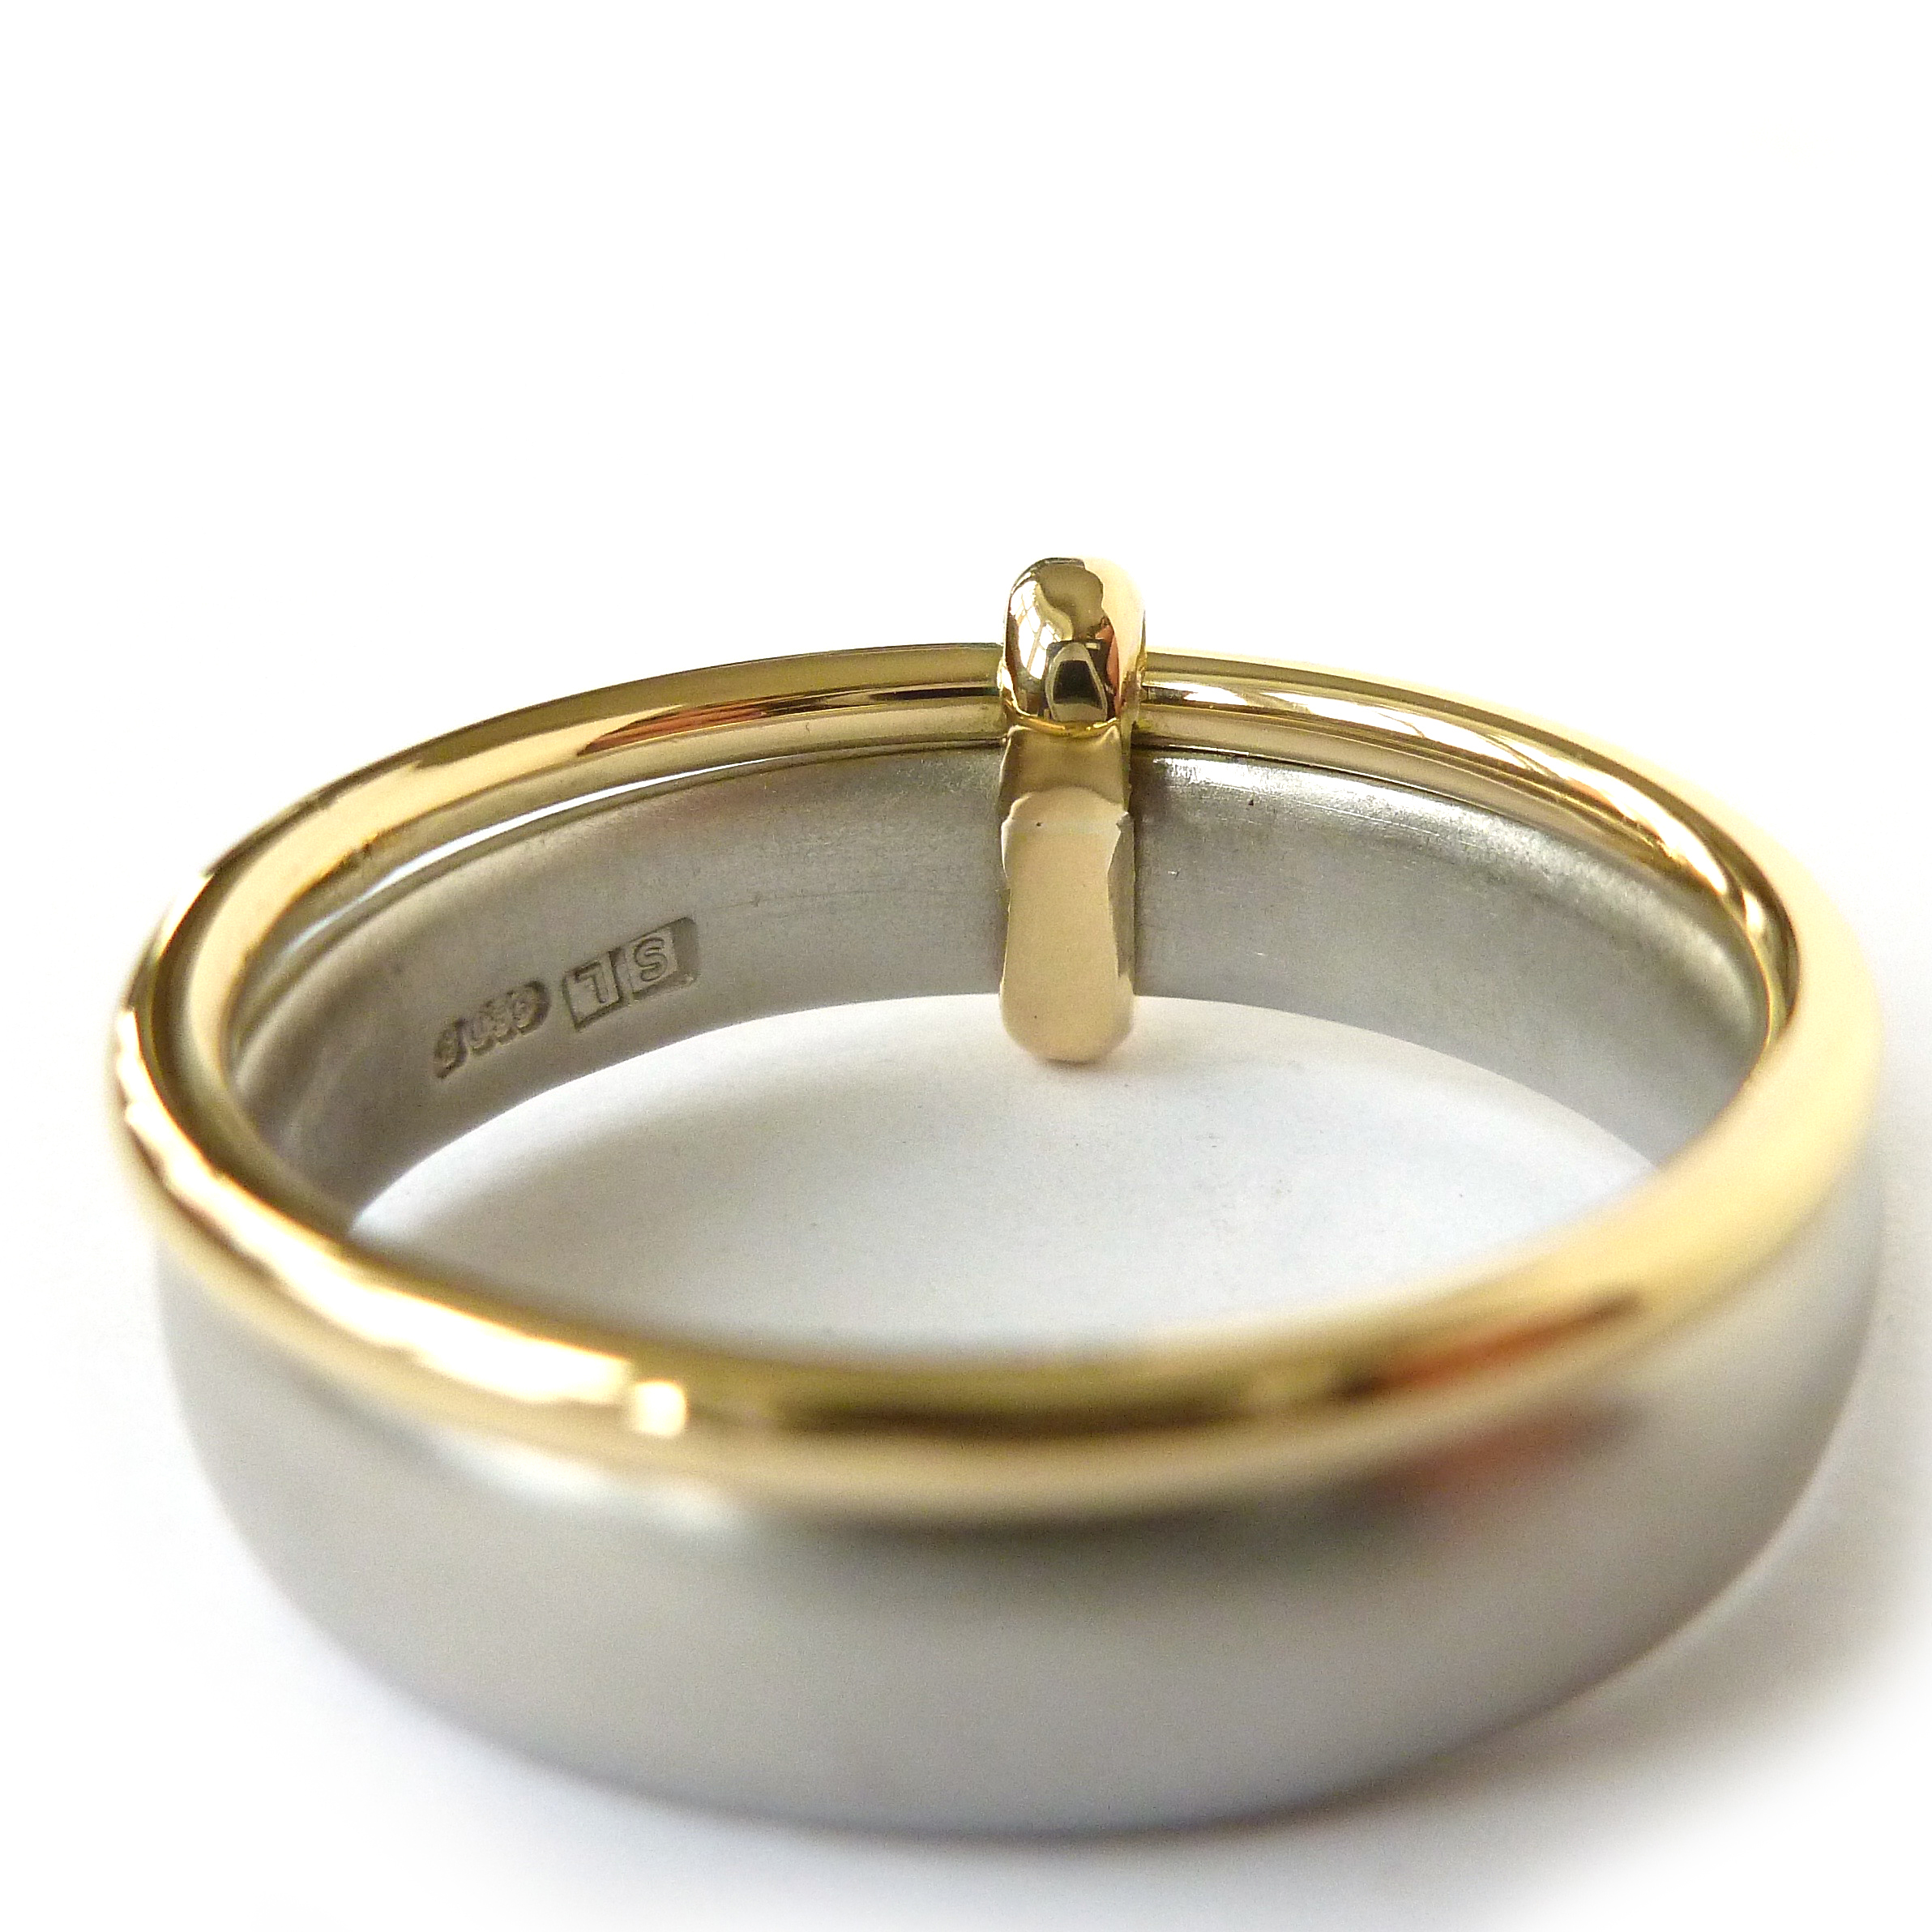 wide group court perspective share comfort in gold this wedding band full ring fit rings page